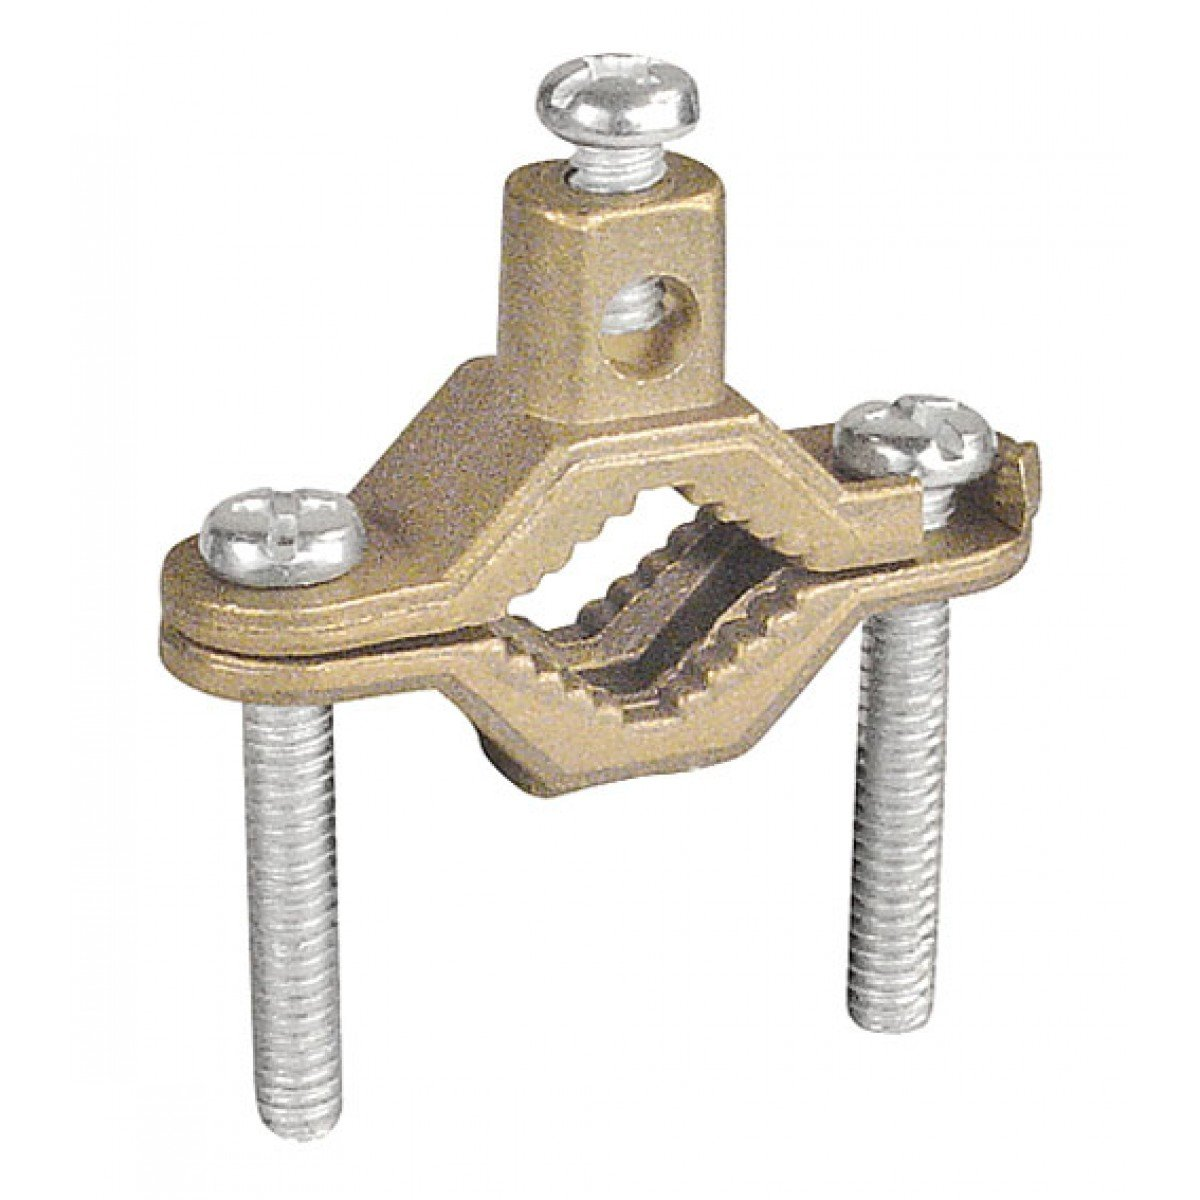 2 Pcs, Bronze Ground Clamp for Bare Wire & Pipe Size 1/2 to 1 In., Bronze Clamp w/Steel Screws to Ground Bare Copper Or Aluminum Wires to Water Pipes, Ground Rods, Rebar by Garvin